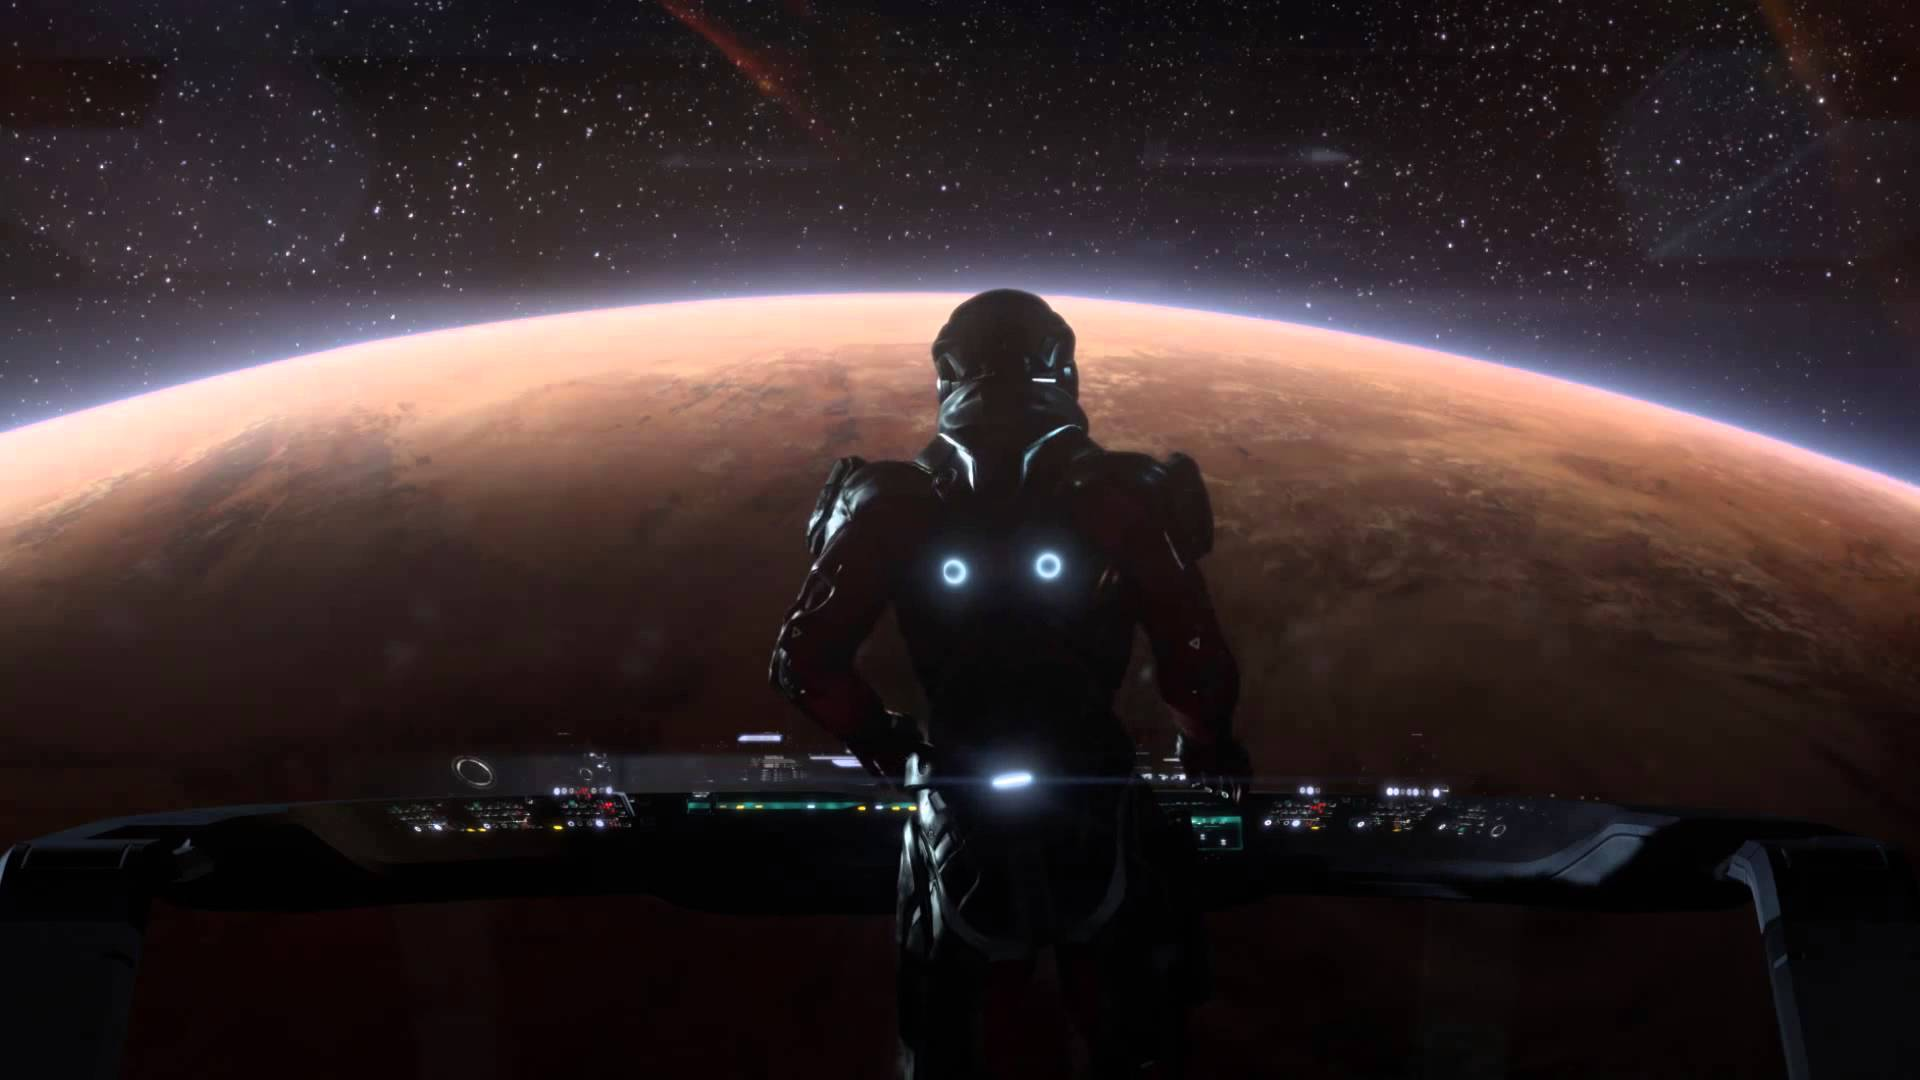 UNILAD maxresdefault48995 The Protagonist For Mass Effect: Andromeda Might Have Just Been Uncovered